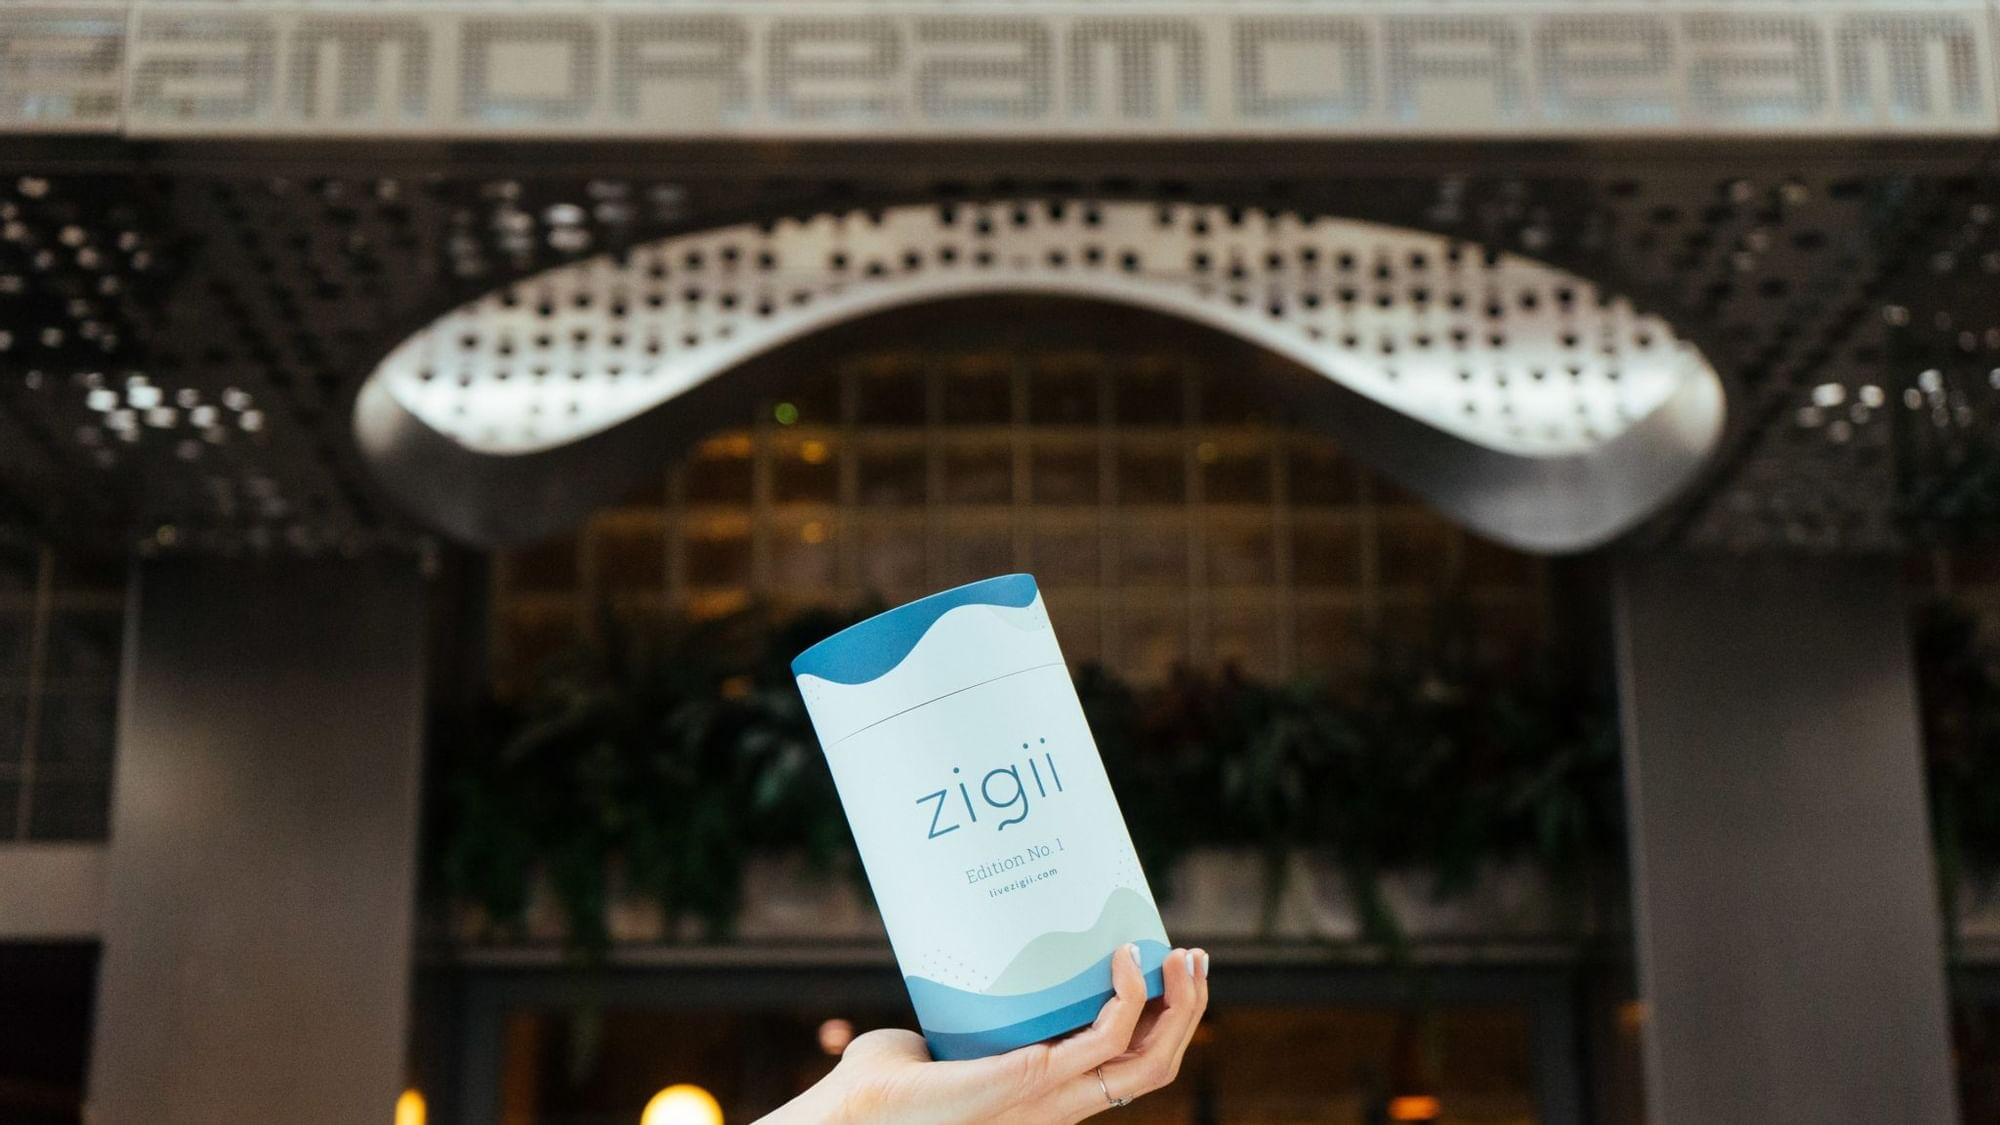 A bottle of 'zigii' on a women's hand with Dream Hotel view.